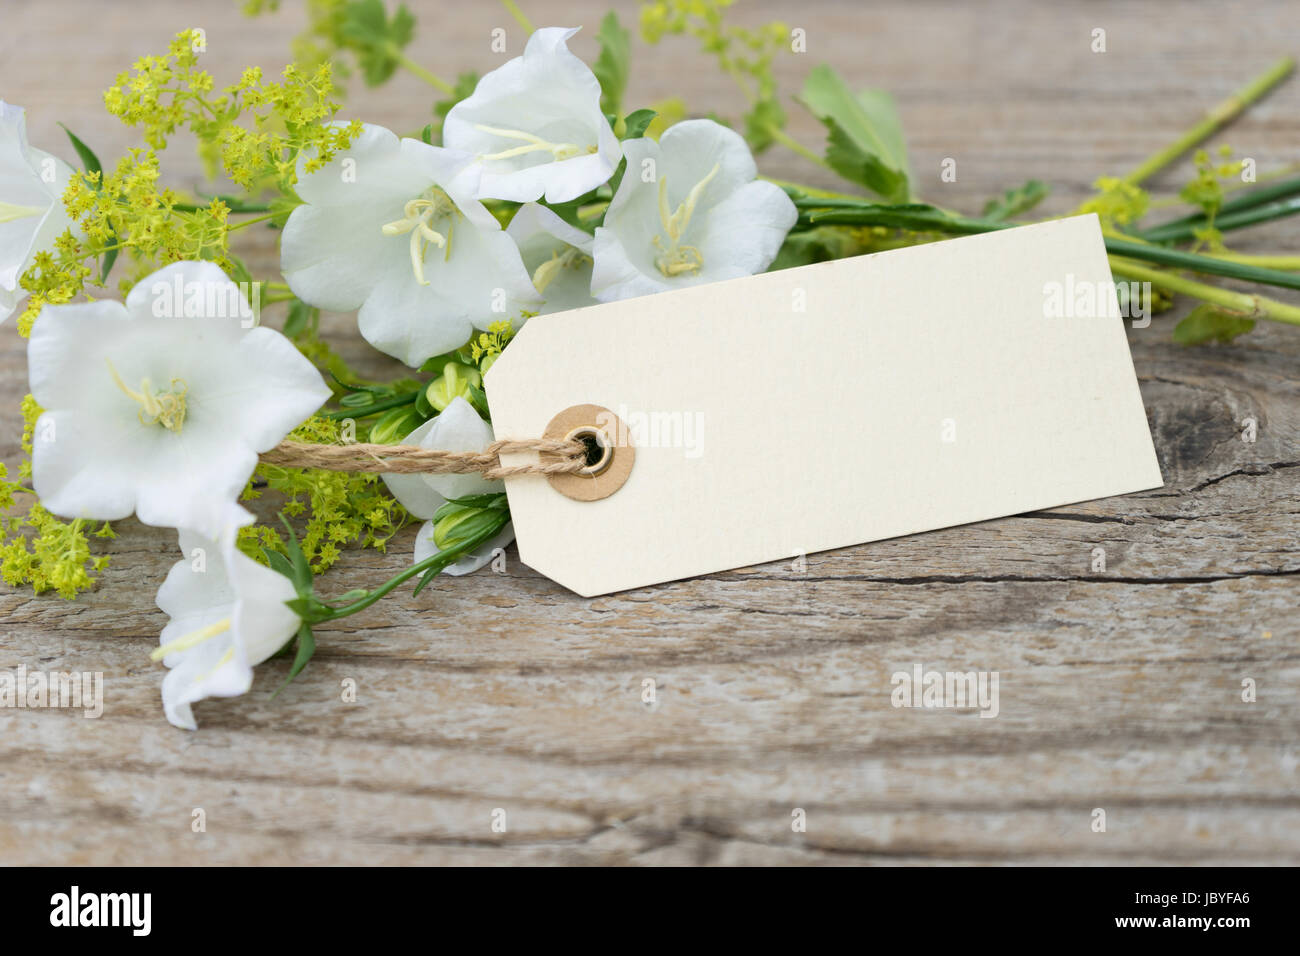 White bell flowers ladys mantle and card stock photo royalty free stock photo white bell flowers ladys mantle and card mightylinksfo Choice Image